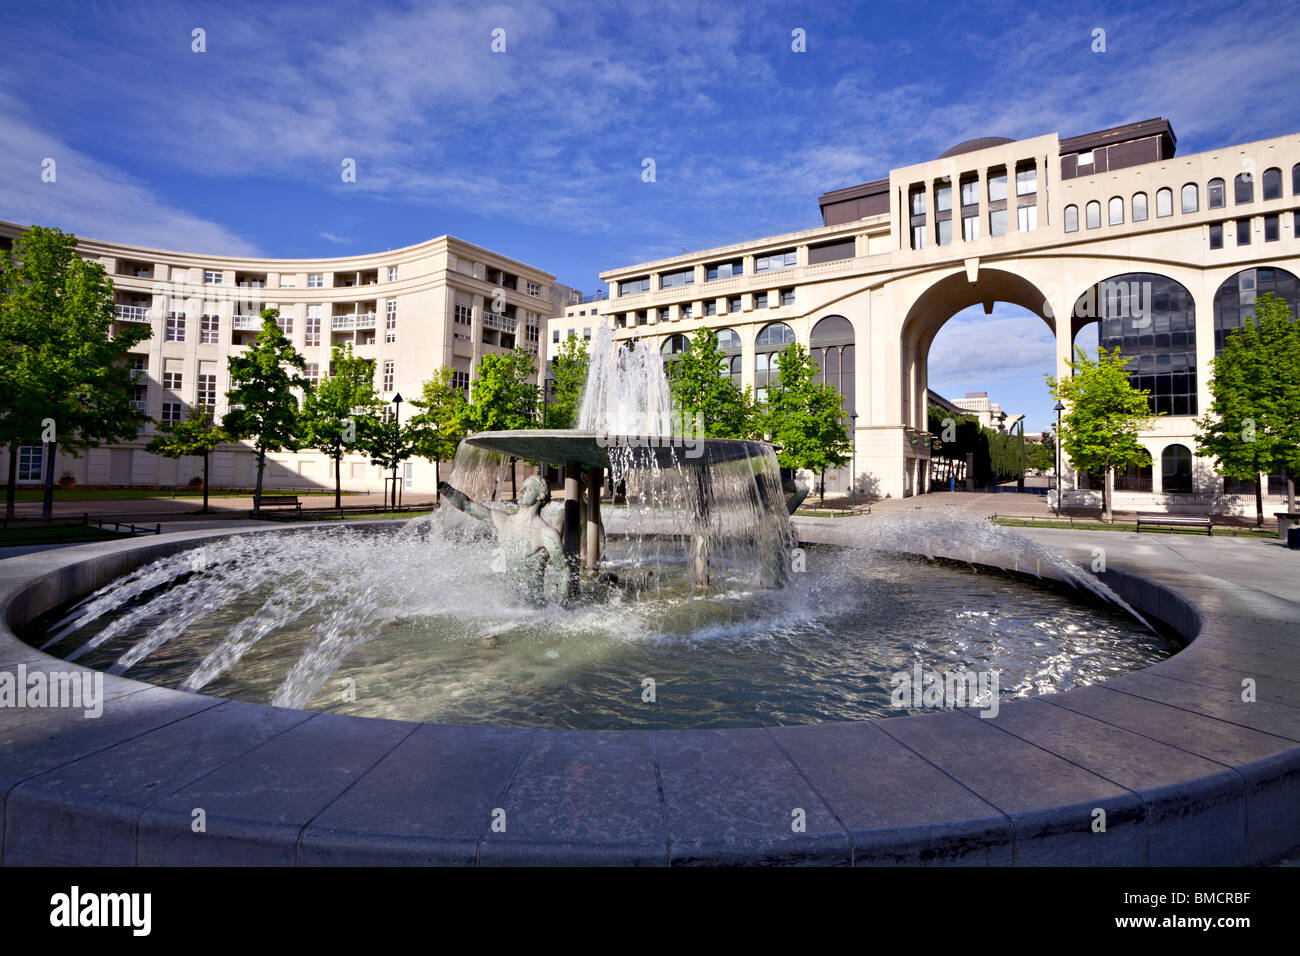 Fountain at the place Zeus, Antigone of Montpellier, France Stock Photo